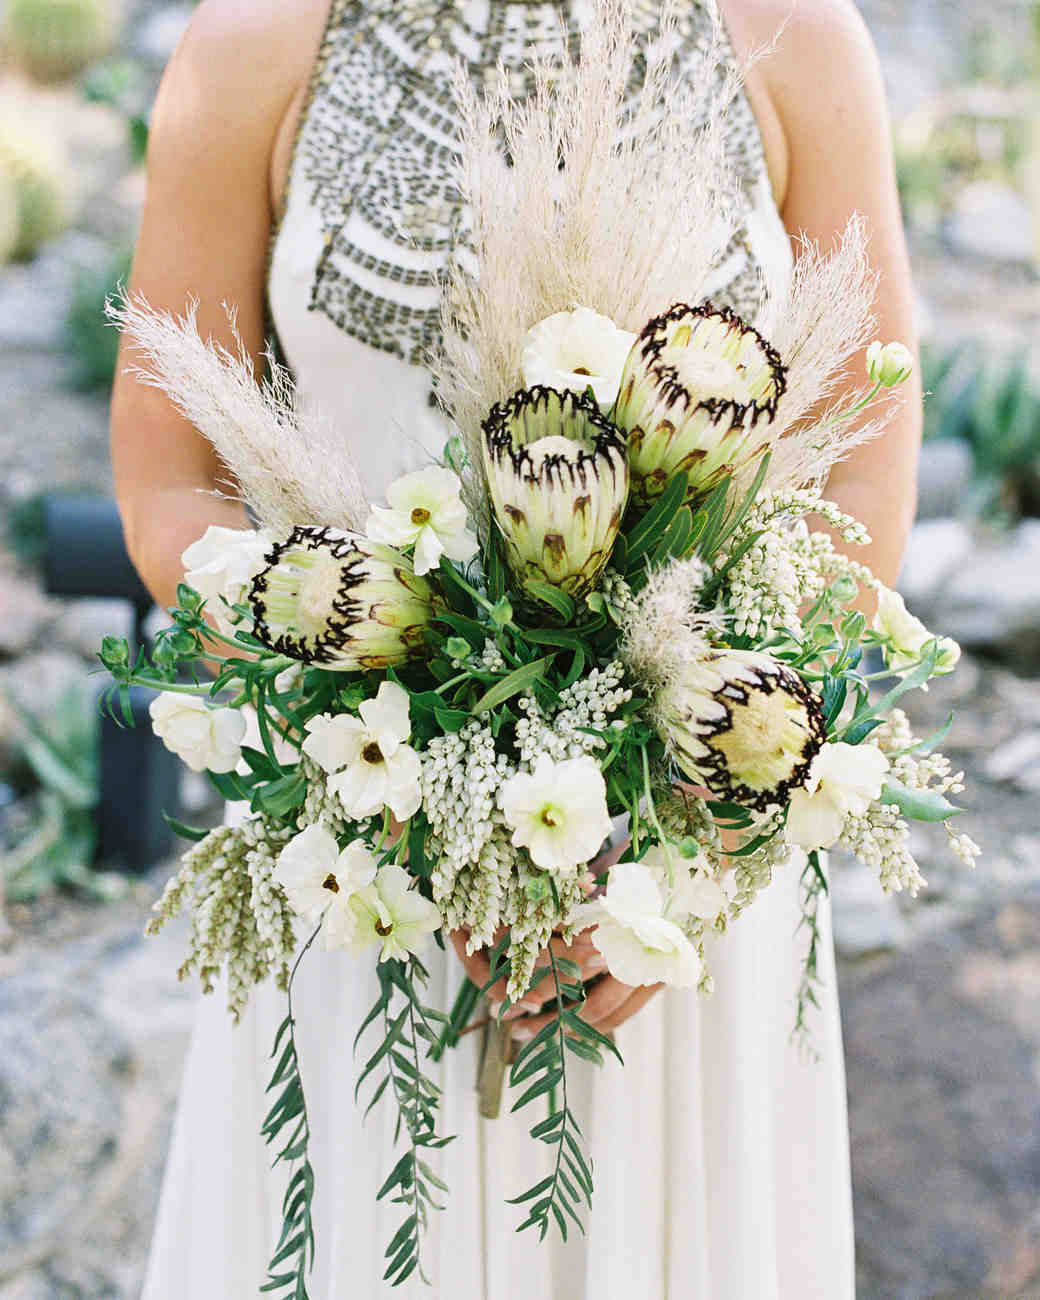 Best Bridal Bouquet Ideas